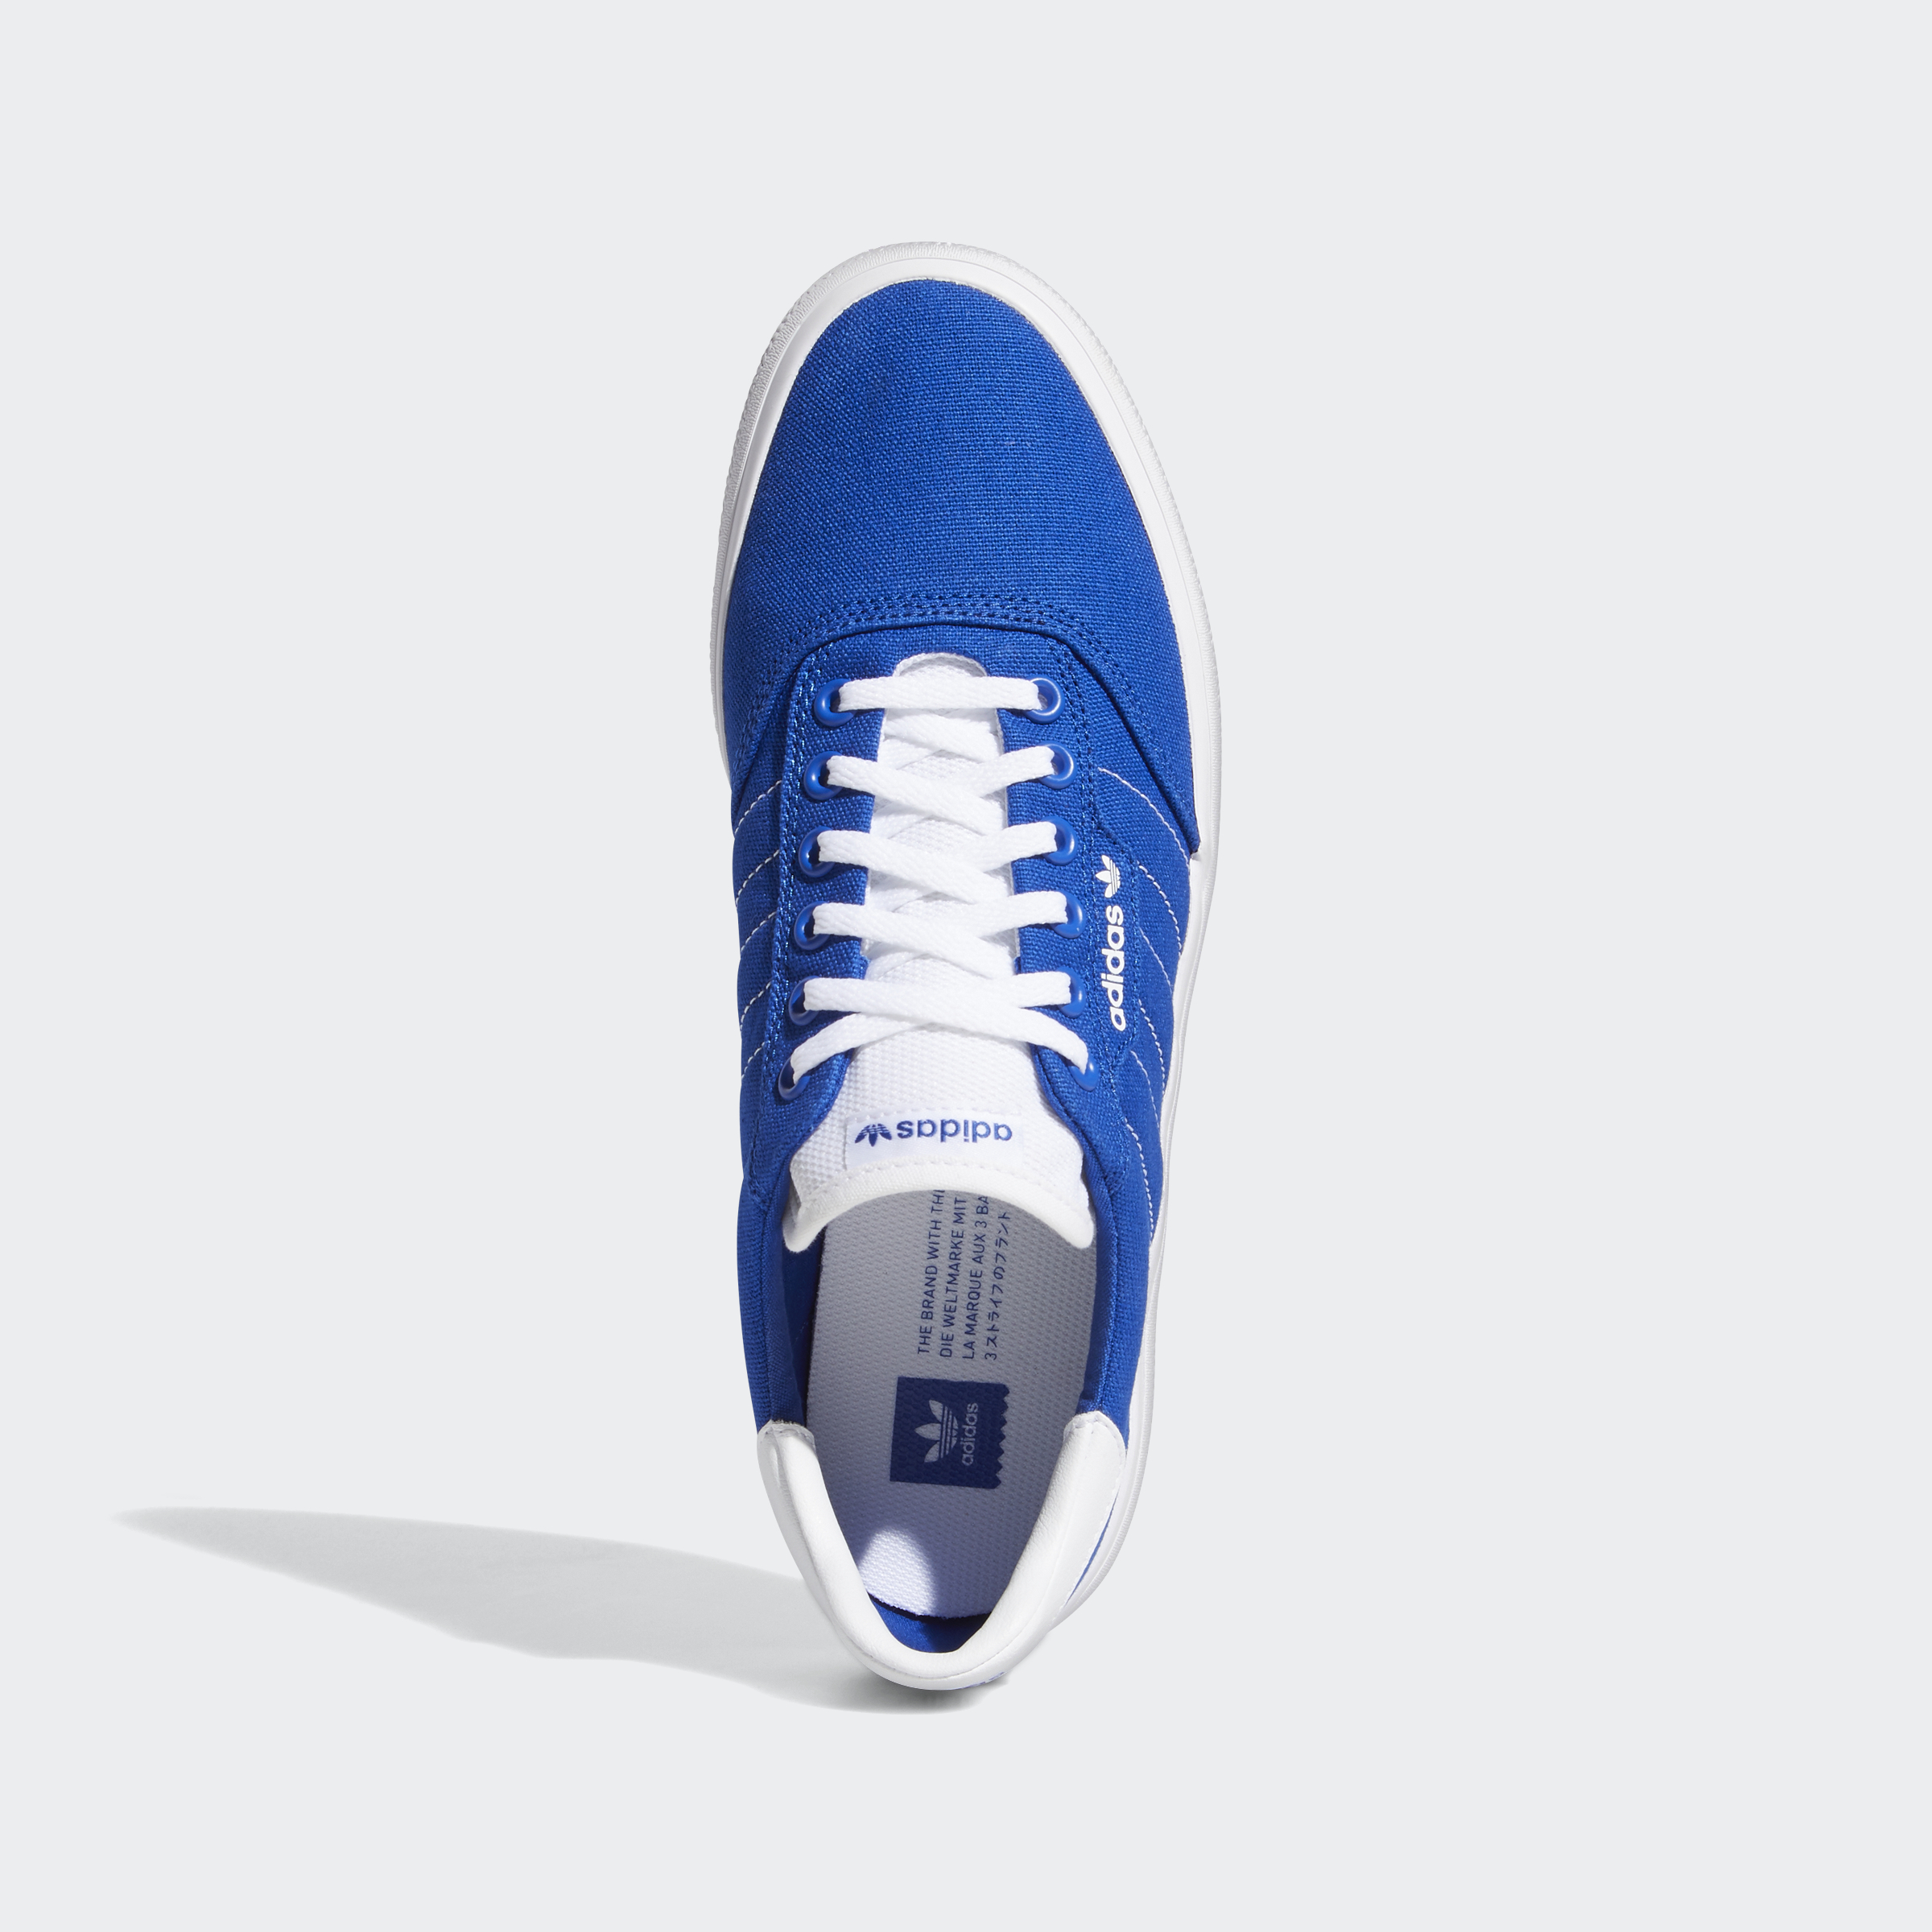 adidas-3MC-Shoes-Athletic-amp-Sneakers miniature 29